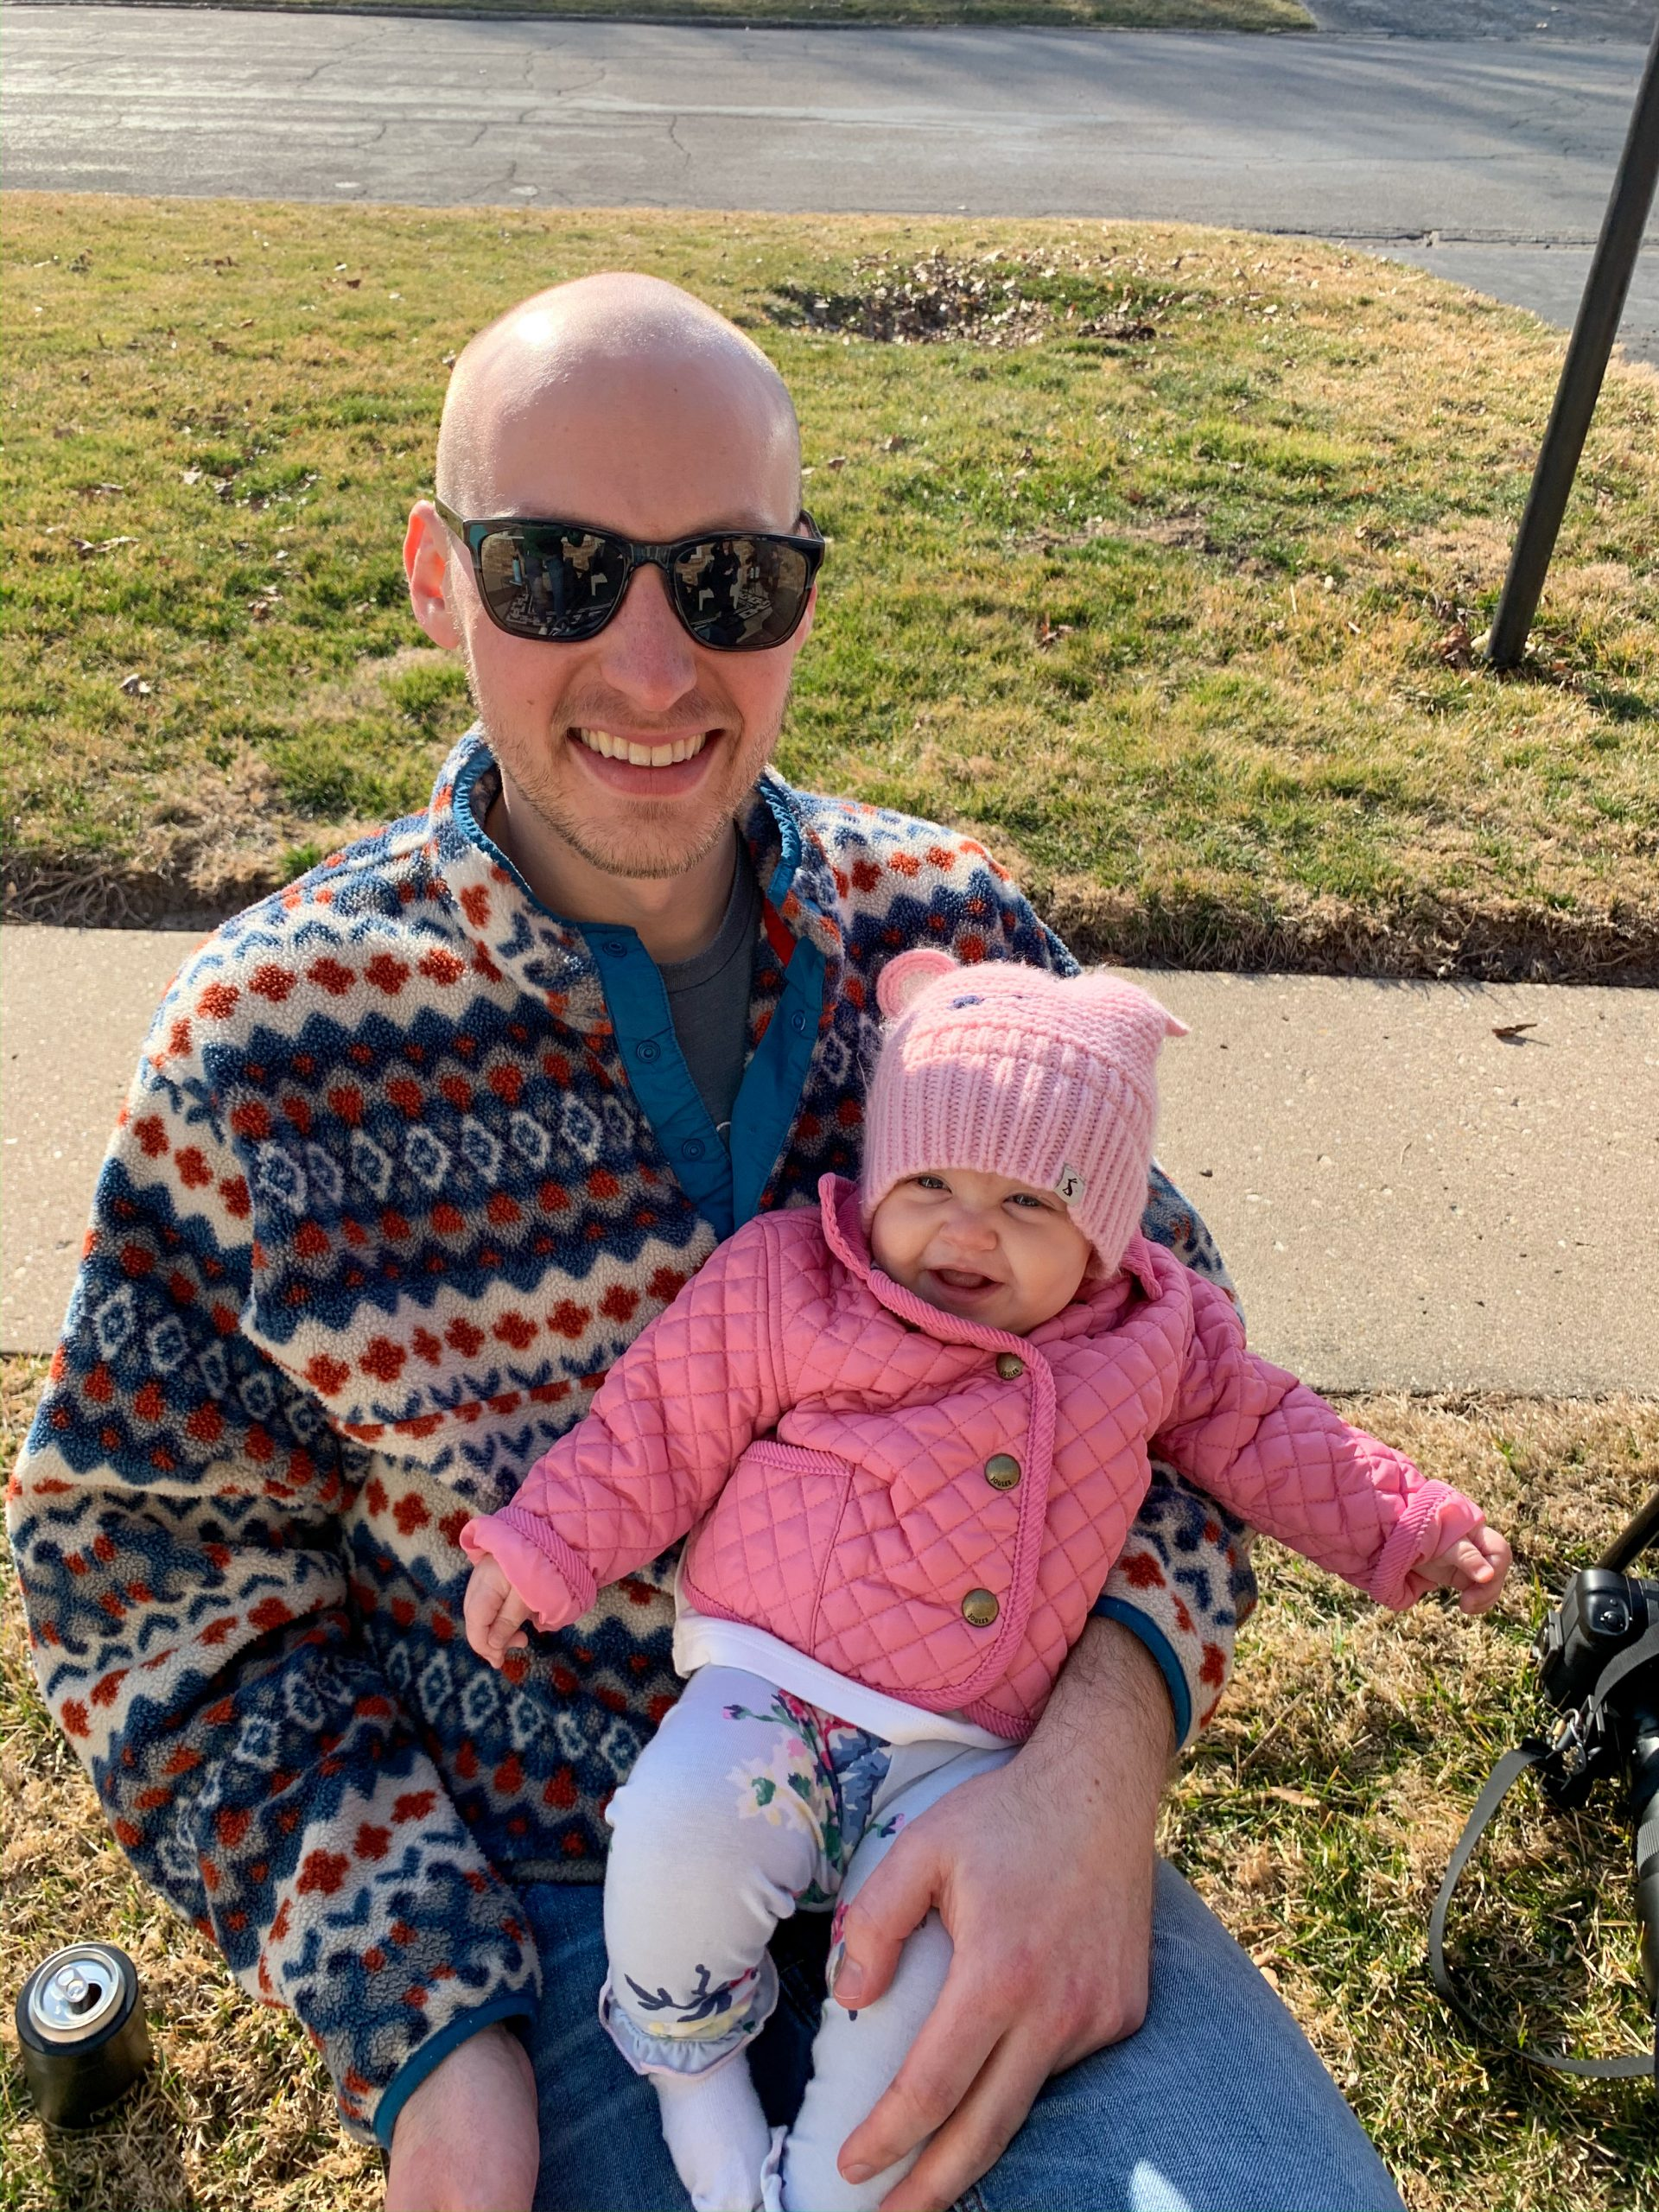 Joules clothing for baby, quilted baby coat, pink baby coat, family blog, Illinois family blogger